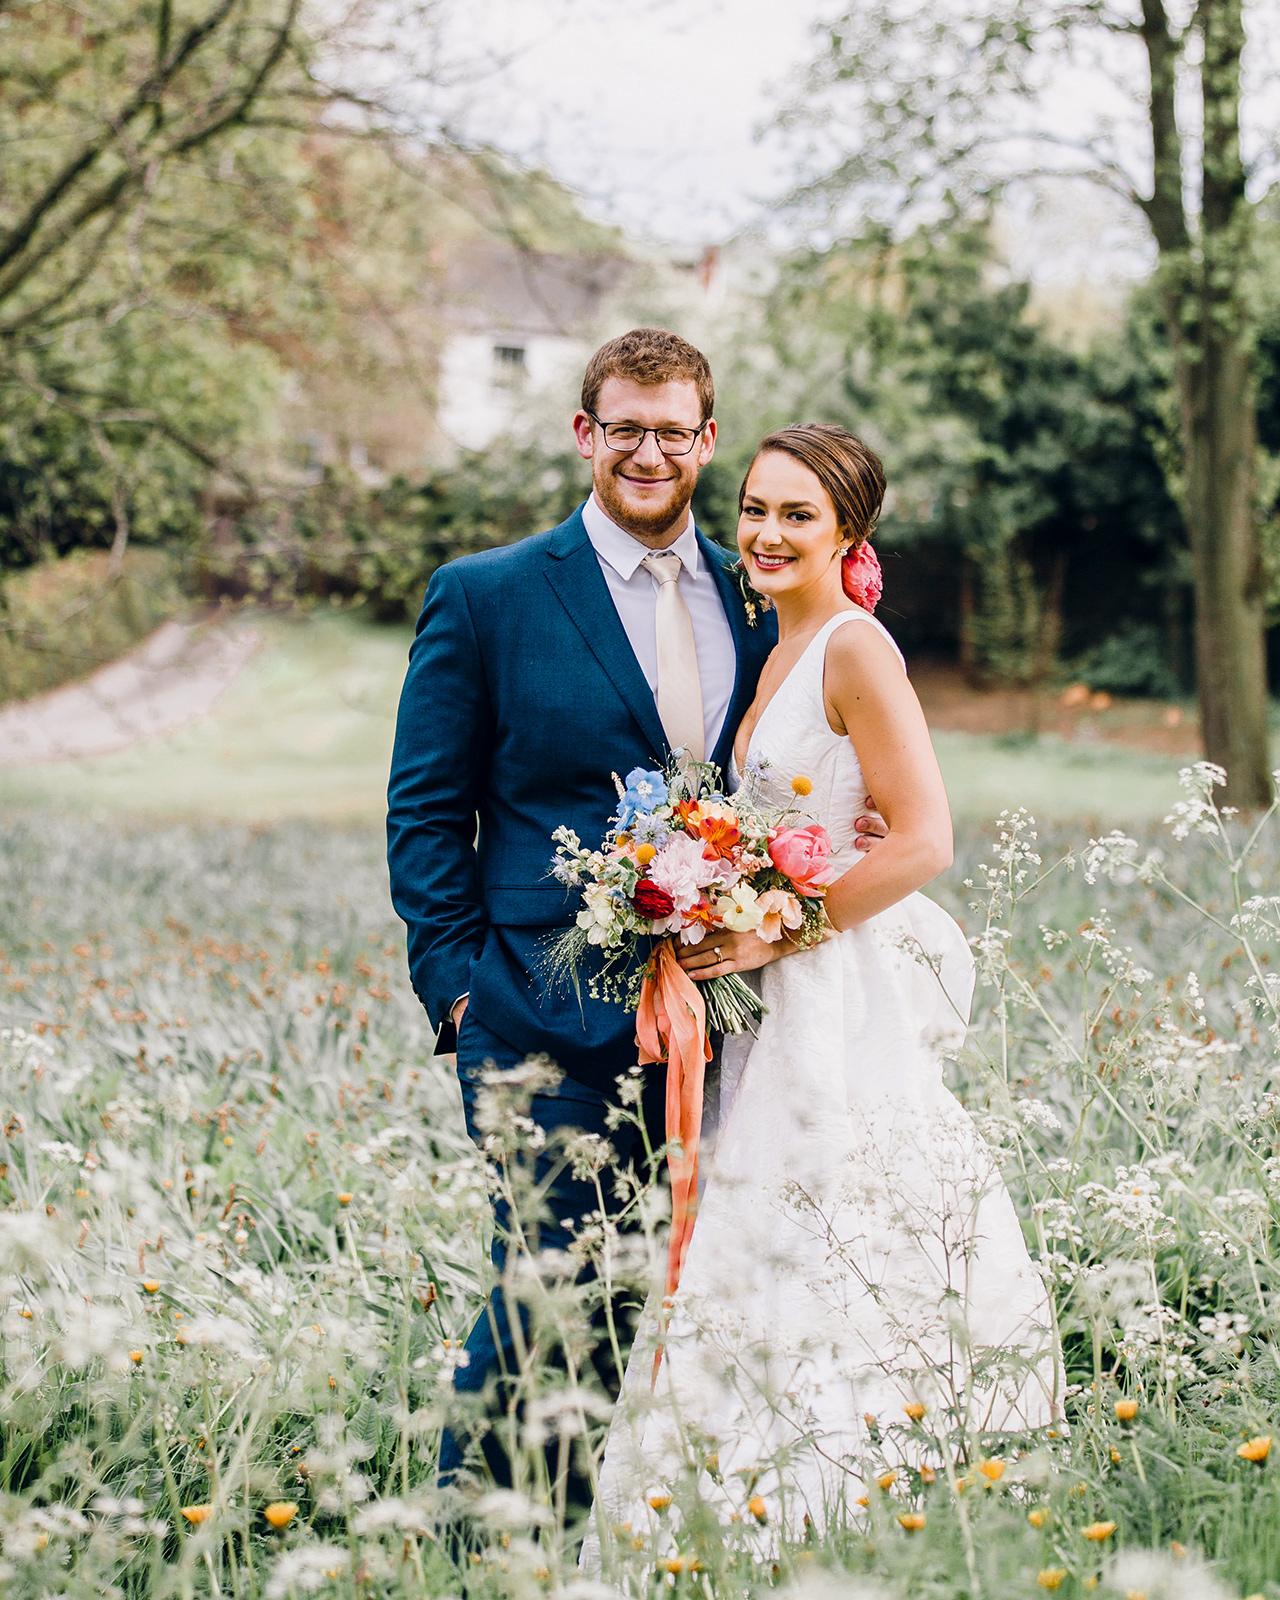 This Alabama Bride Brought a Dose of Southern Comfort to Her Classic Wedding in the United Kingdom